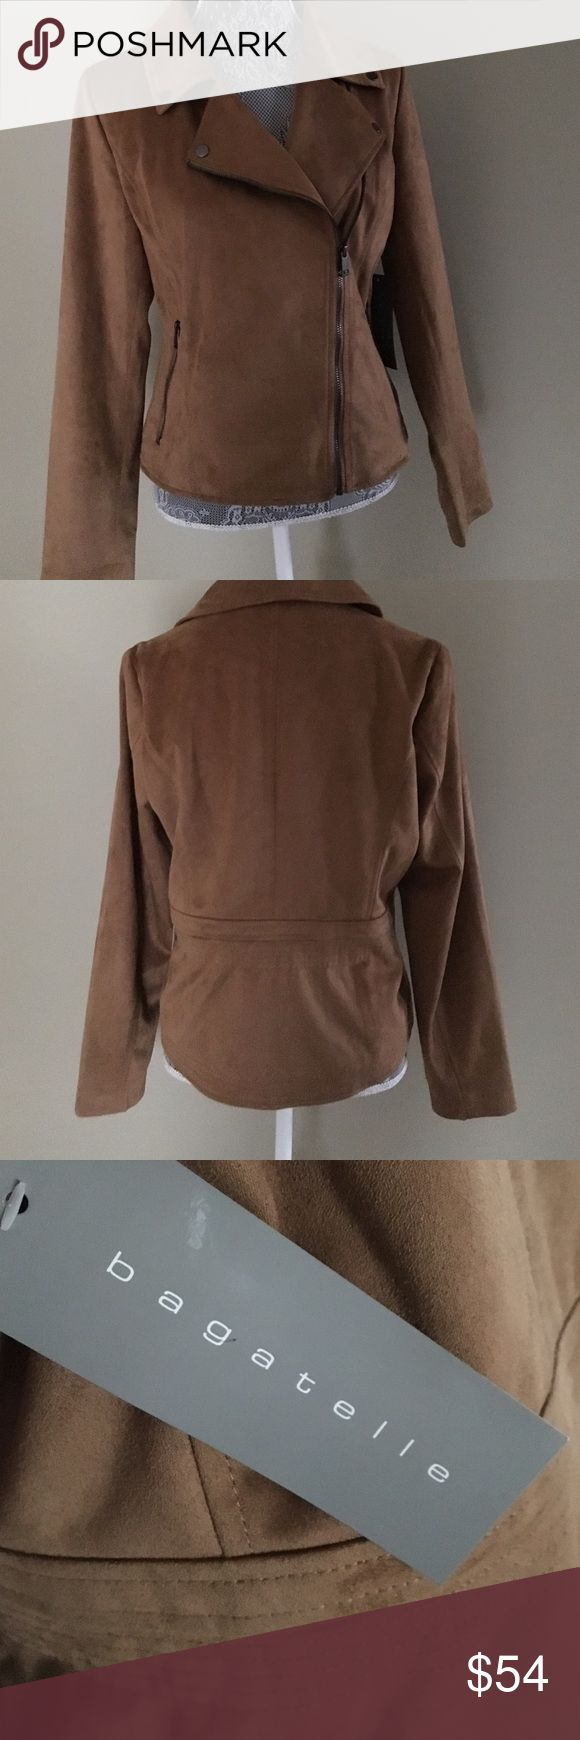 NWT Bagatelle Suede Jacket NWT Bagatelle Suede Jacket. Whiskey brown color w/front slant zip and 2 zip pockets.  Gorgeous!  Size M Bagatelle Jackets & Coats